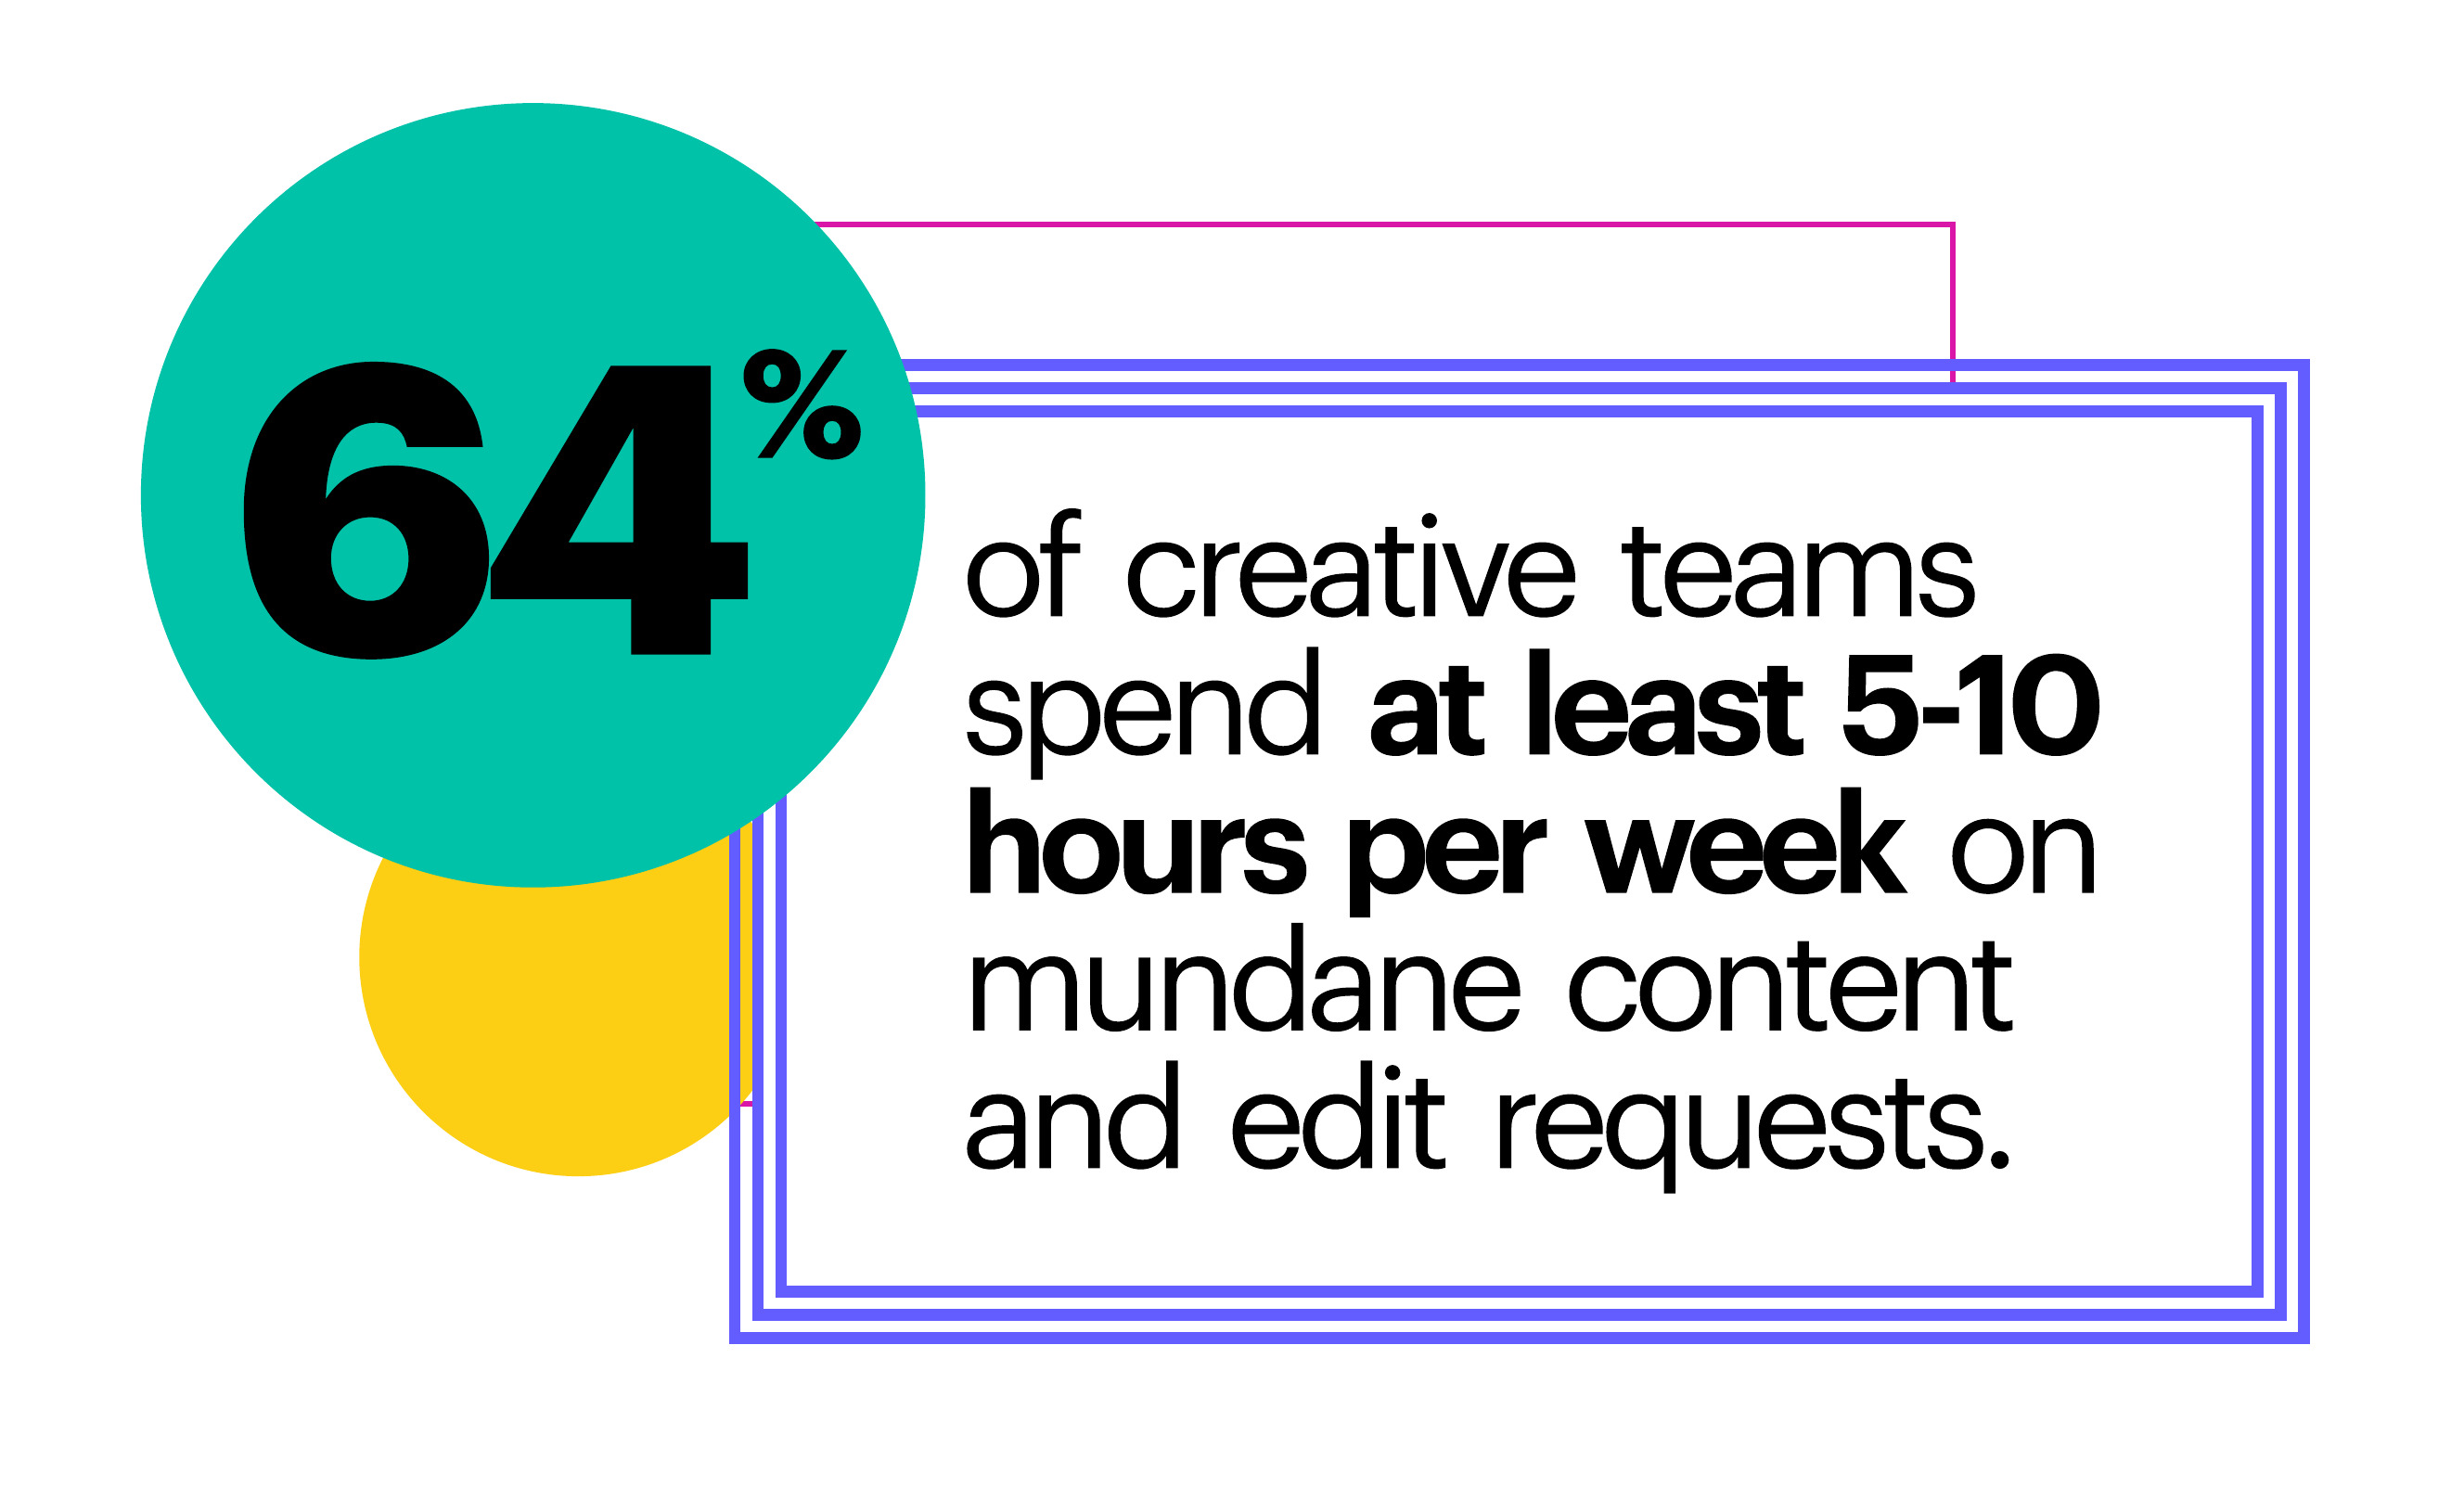 64% of creative teams spend at least 5-10 hours per week on mundane content requests.